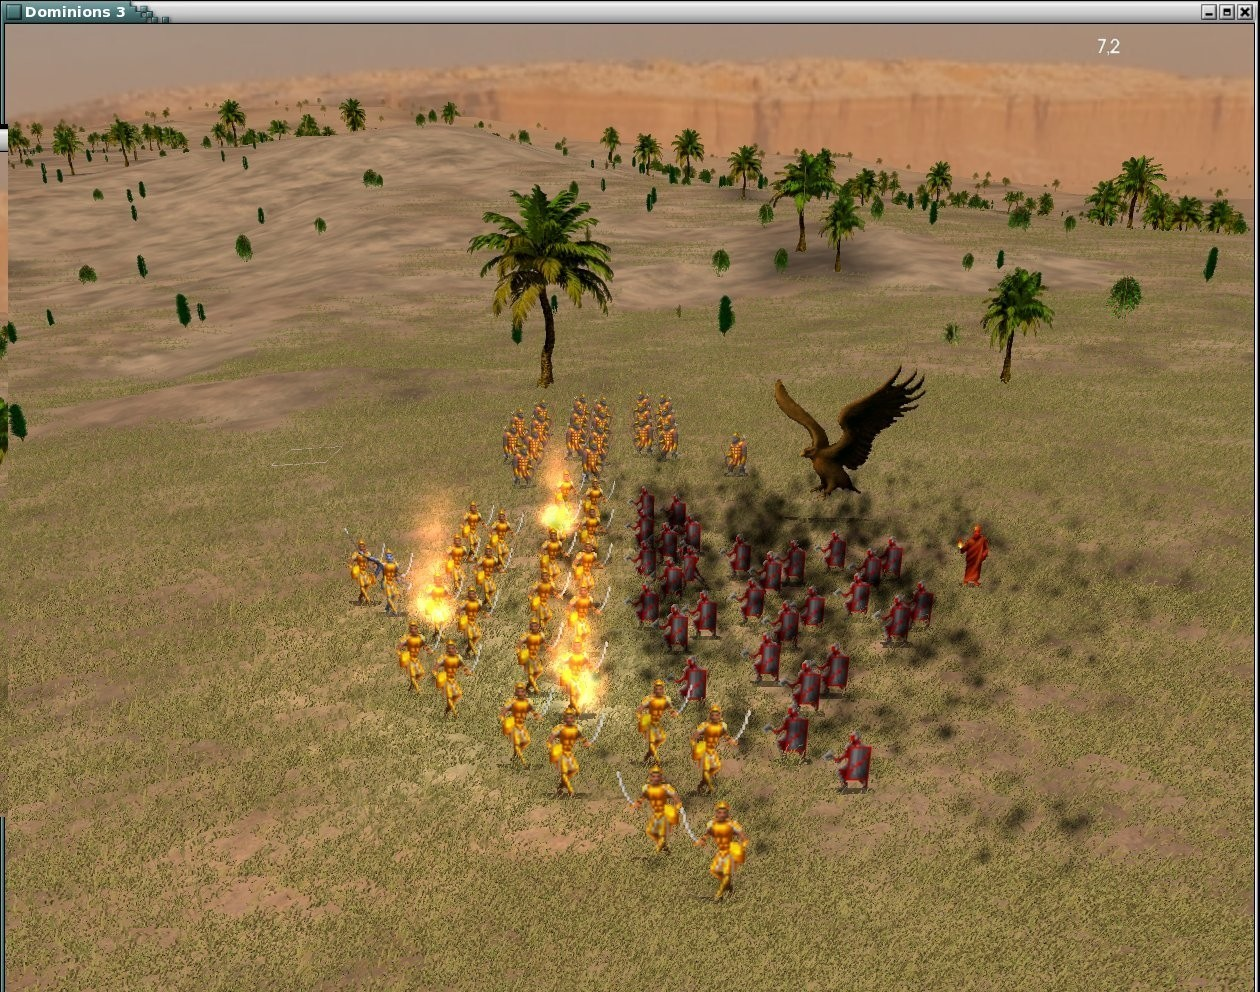 Dominions 3 for Mac